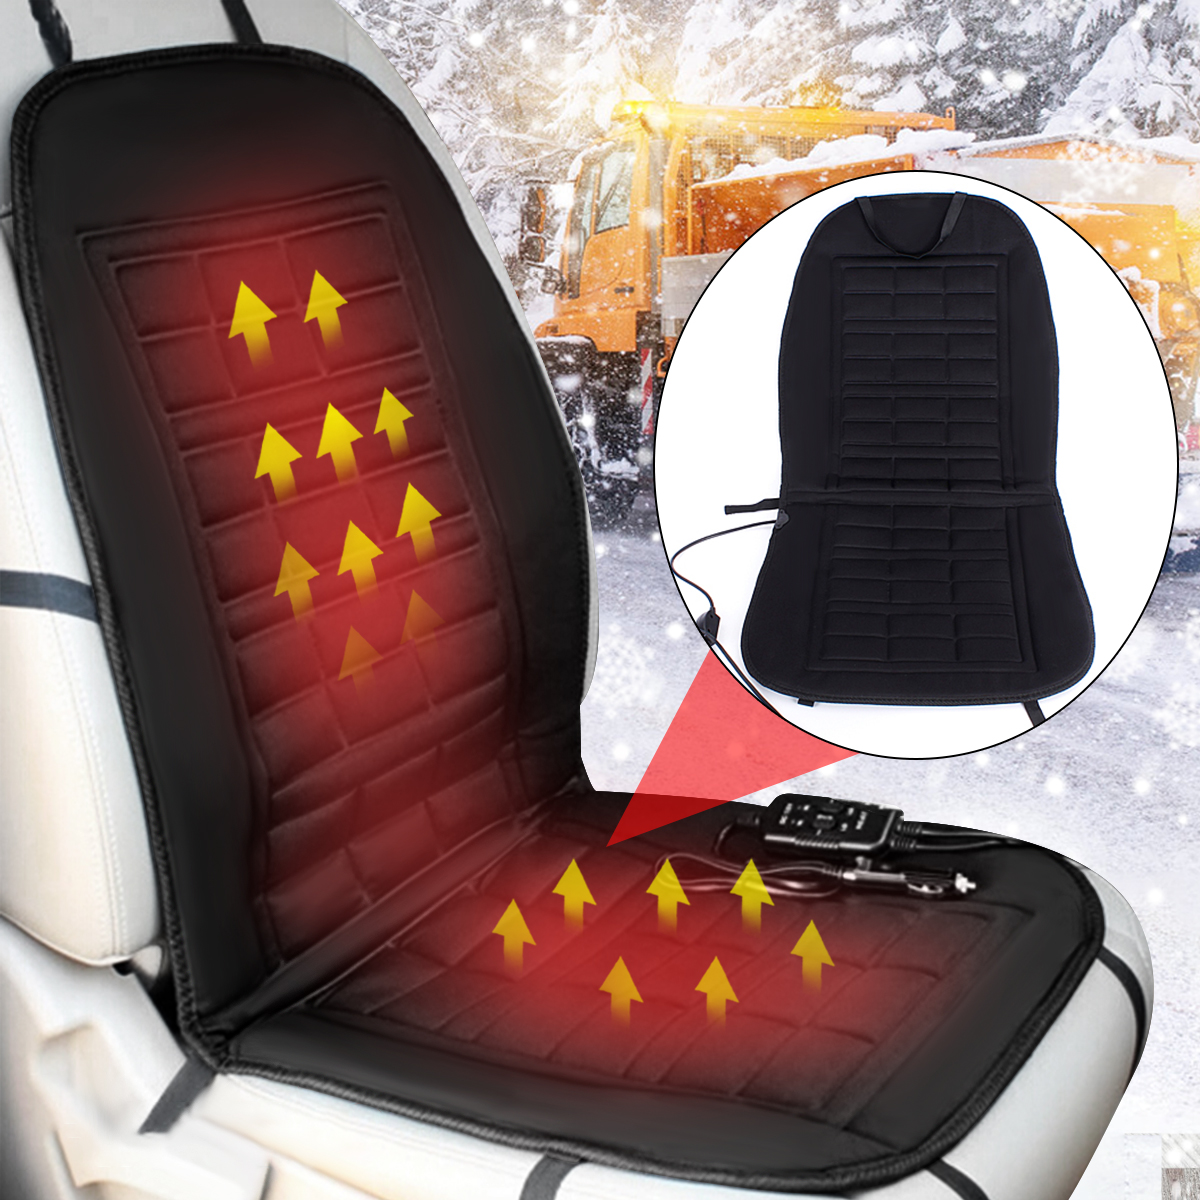 12V Car Heated Seat Cover Cushion Hot Warmer Auto Front Pad Black Grey Cover Perfect for Cold Weather and Winter Driving